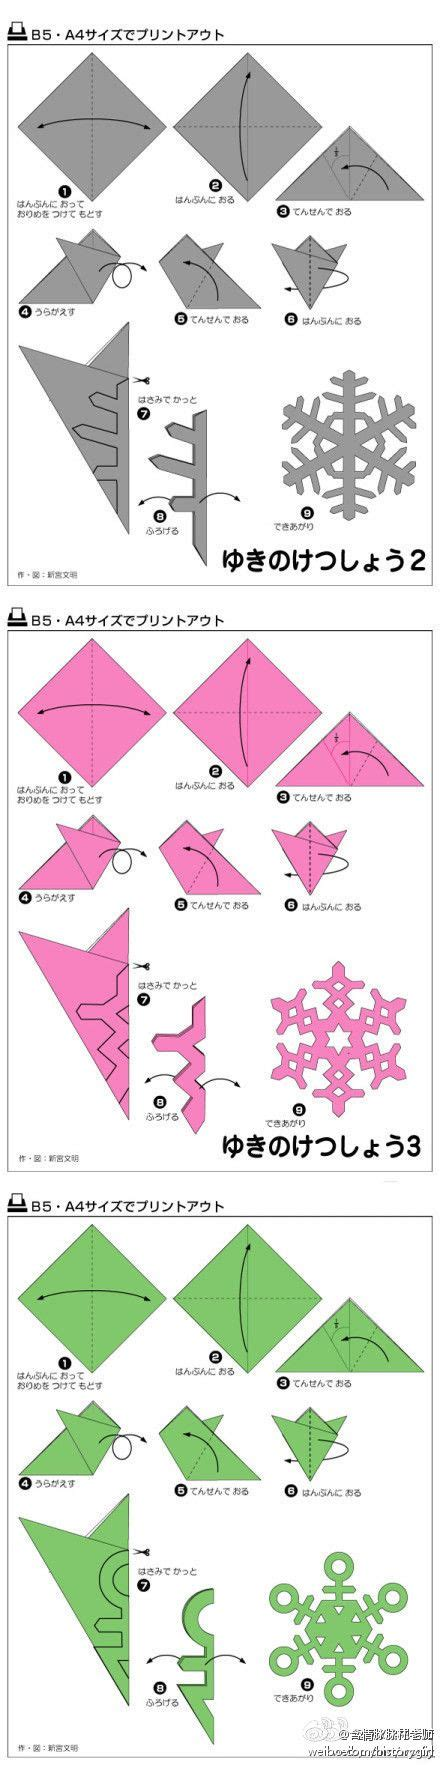 world of paper snowflakes a how to guide and new design templates volume volume 1 books snowflakes winter crafts for